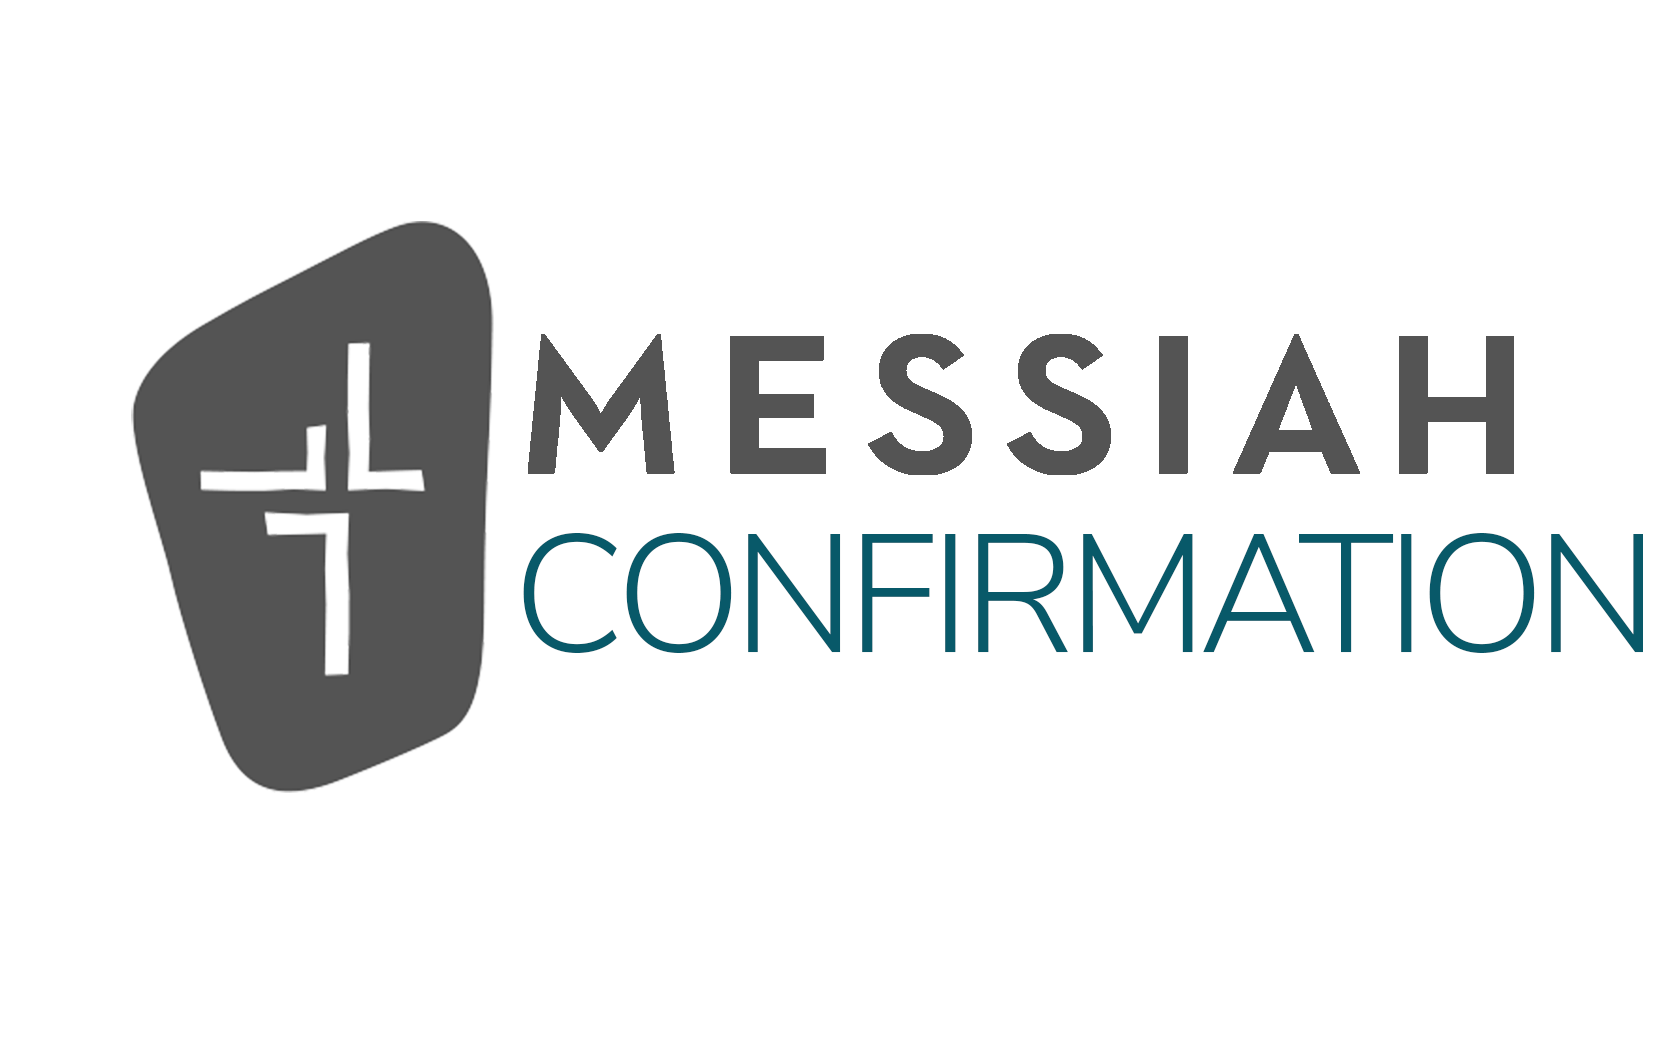 messiah st charles confirmation